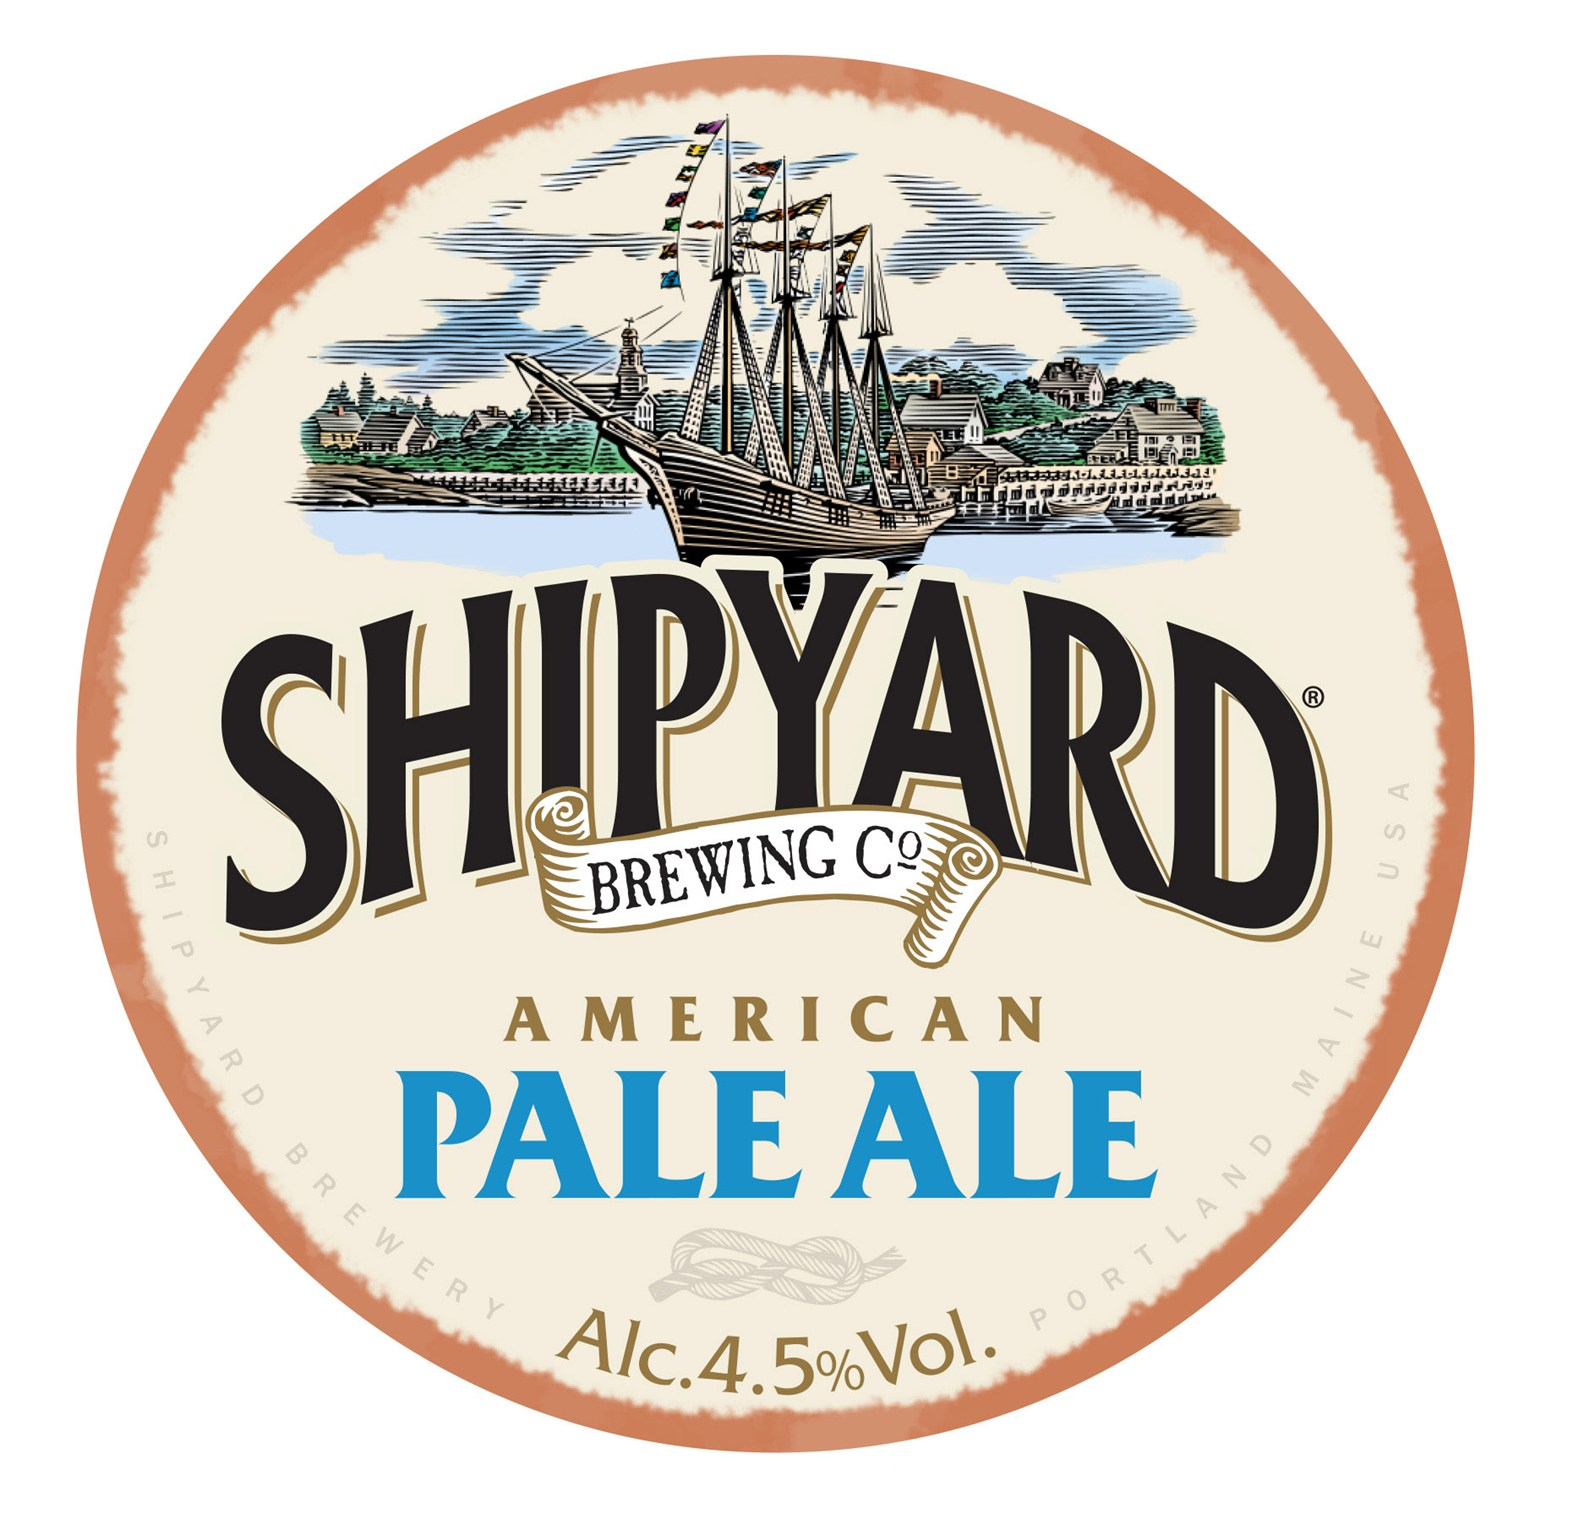 Marstons Shipyard - American Pale Ale